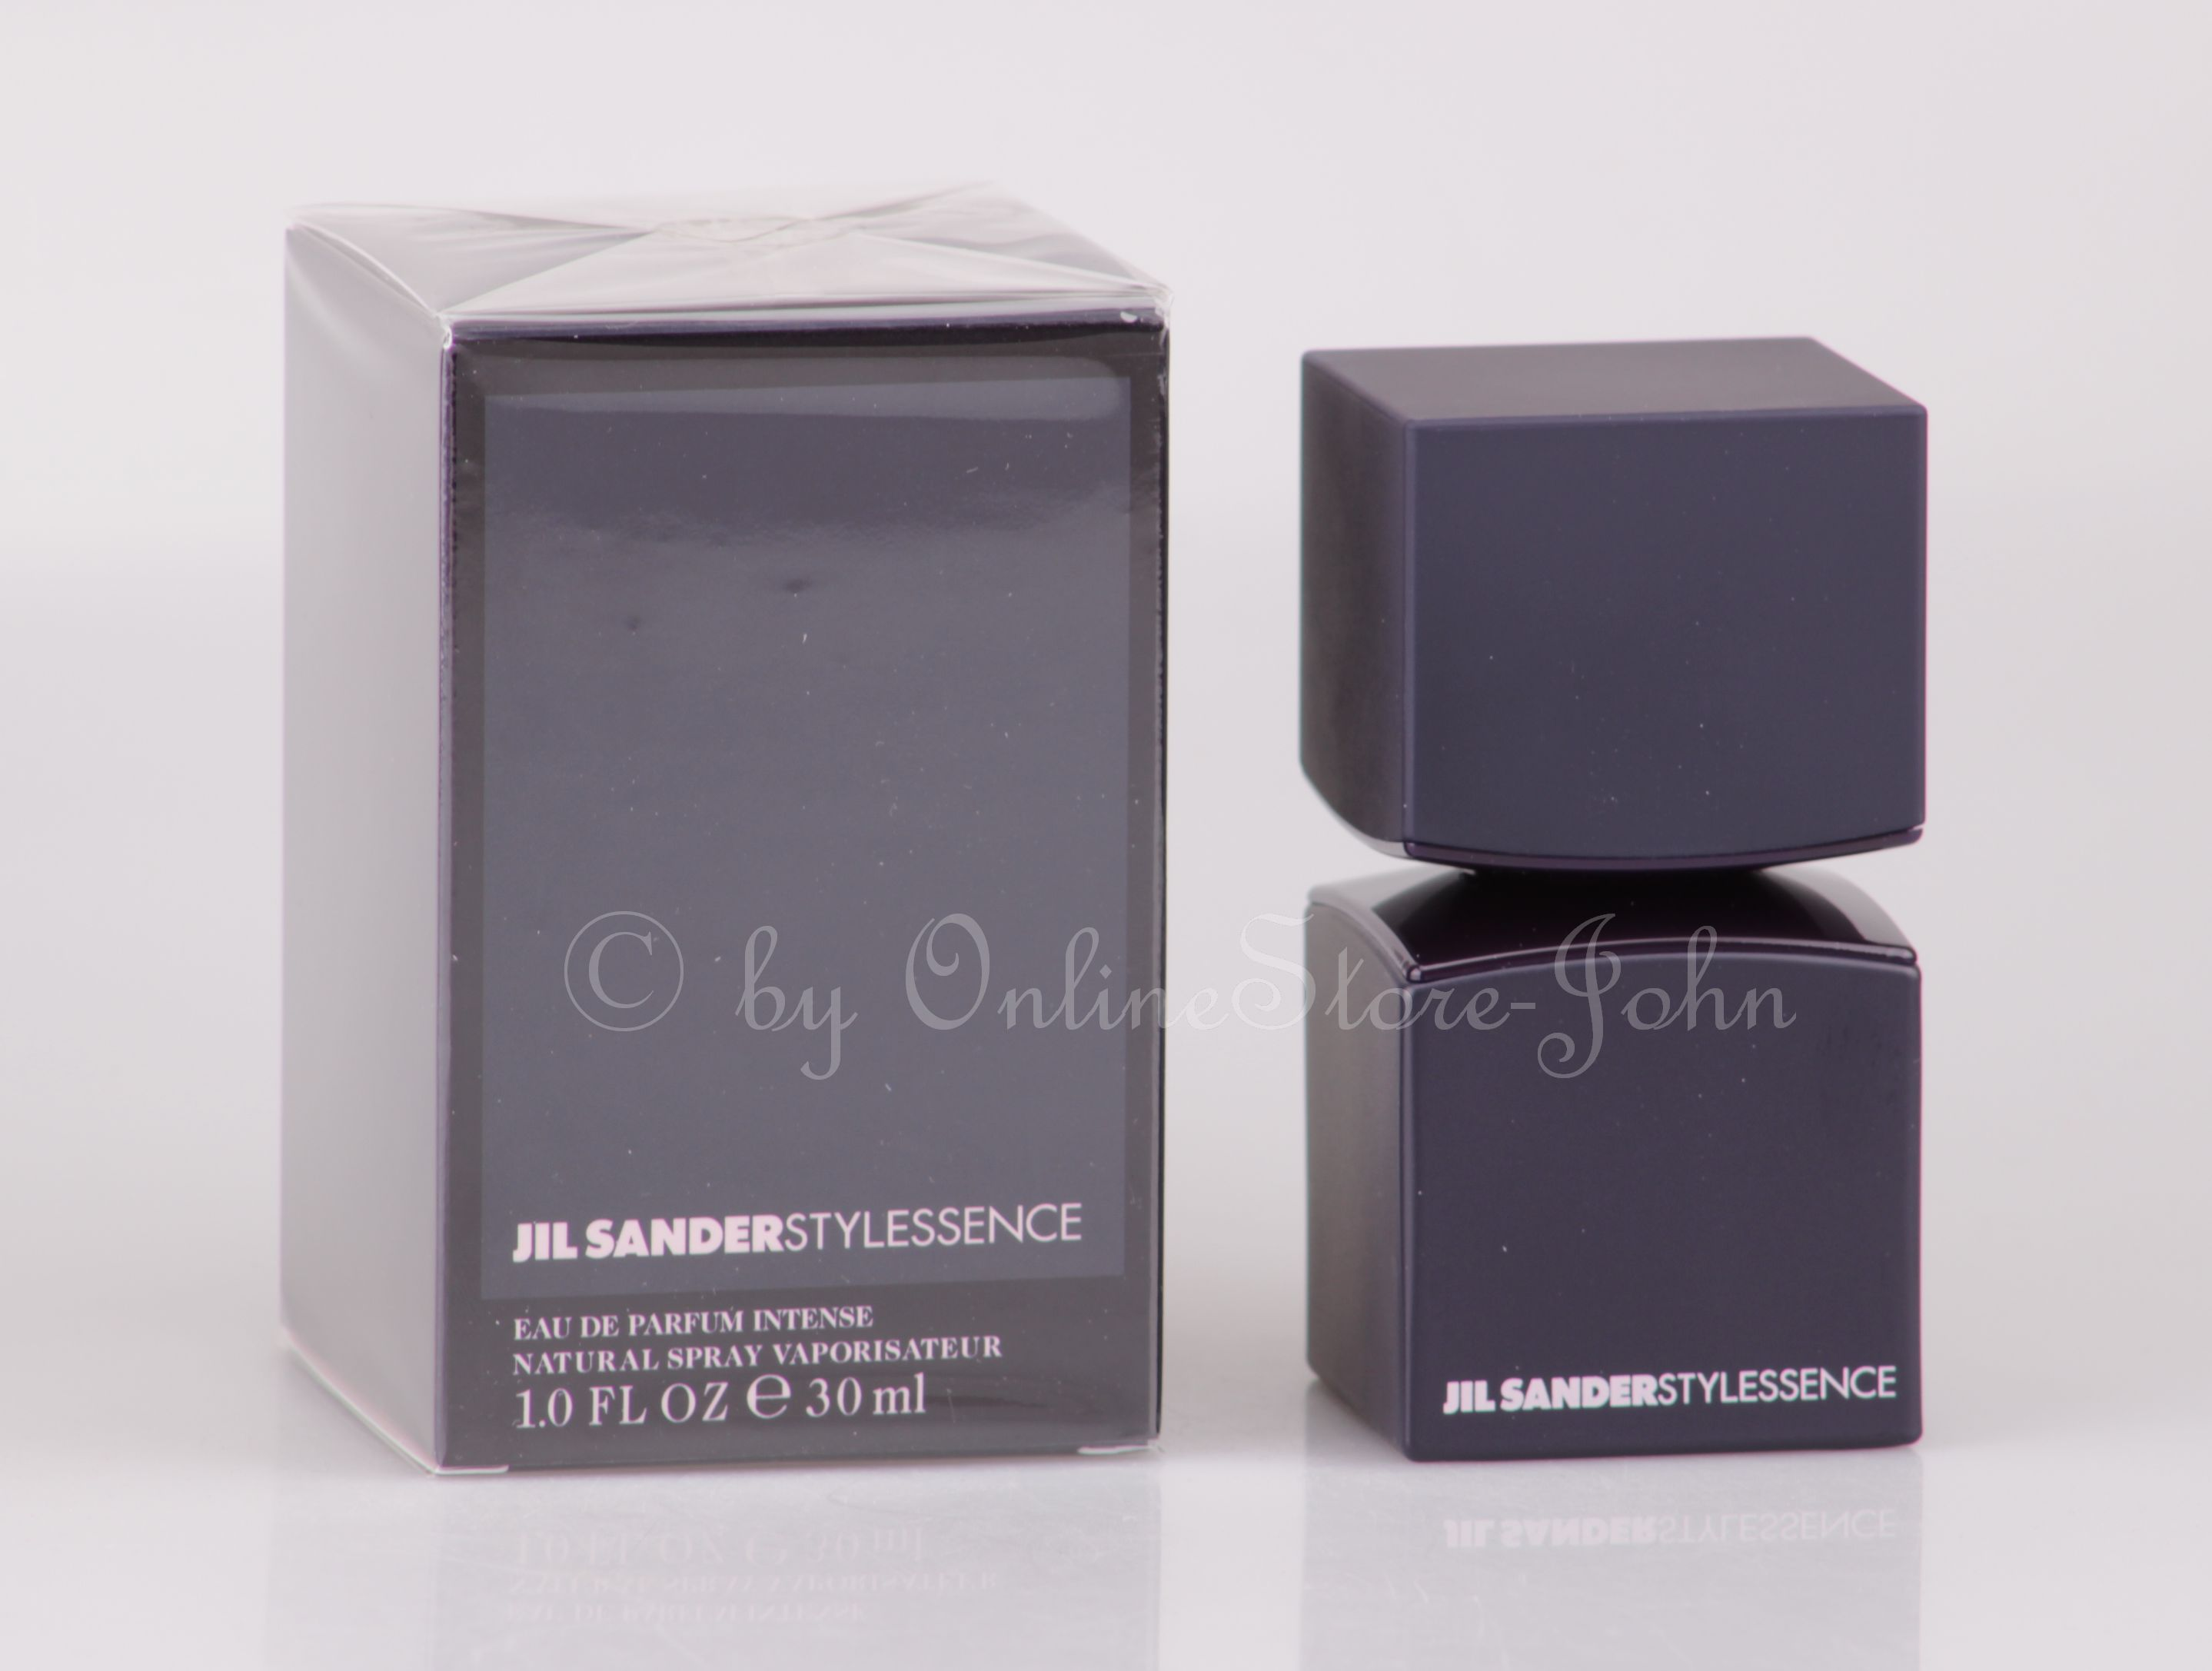 jil sander stylessence 30ml edp eau de parfum intense. Black Bedroom Furniture Sets. Home Design Ideas